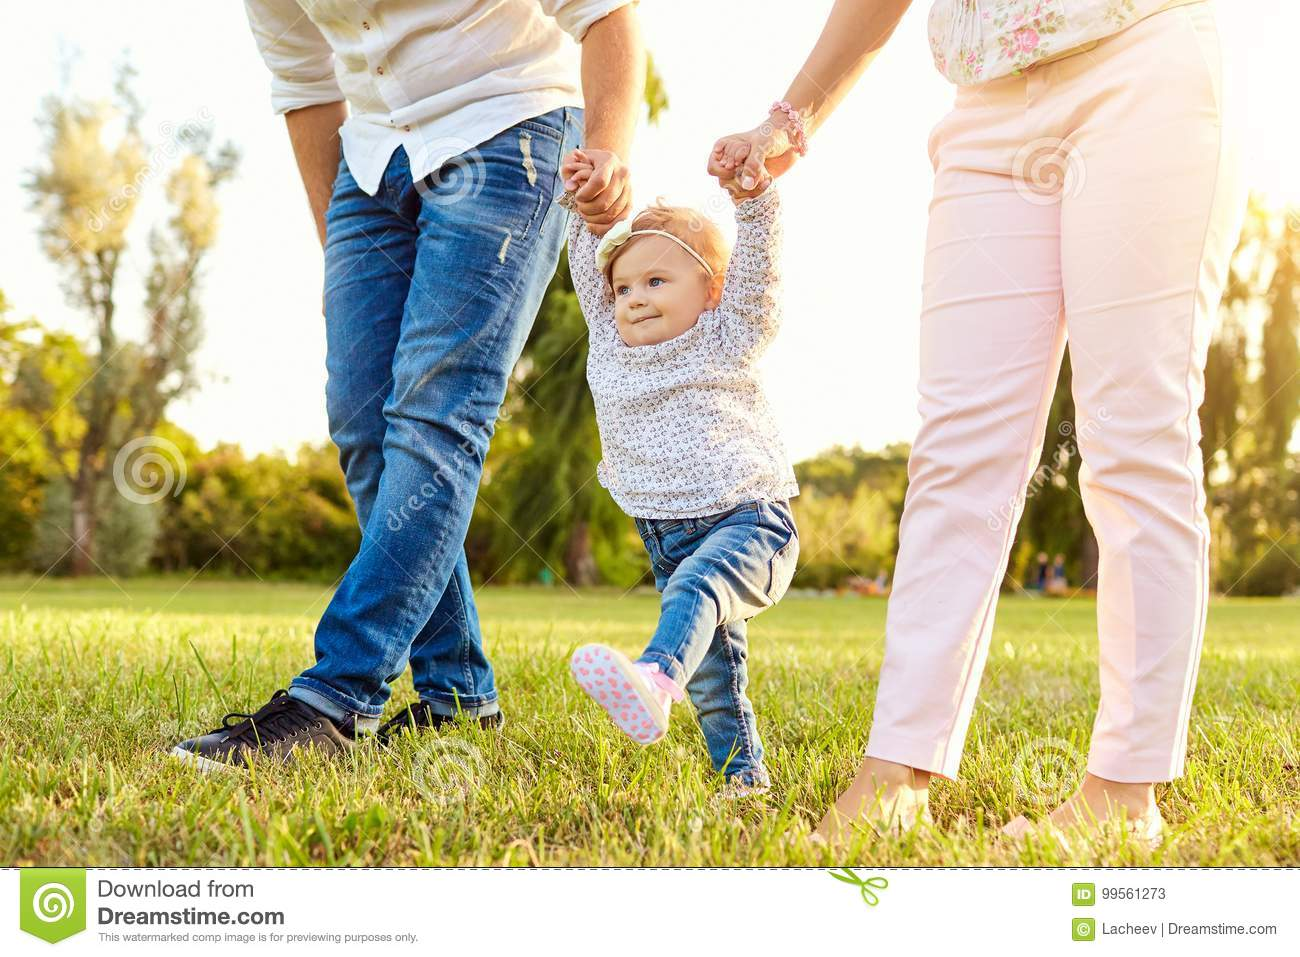 The first steps of the baby. A happy family.